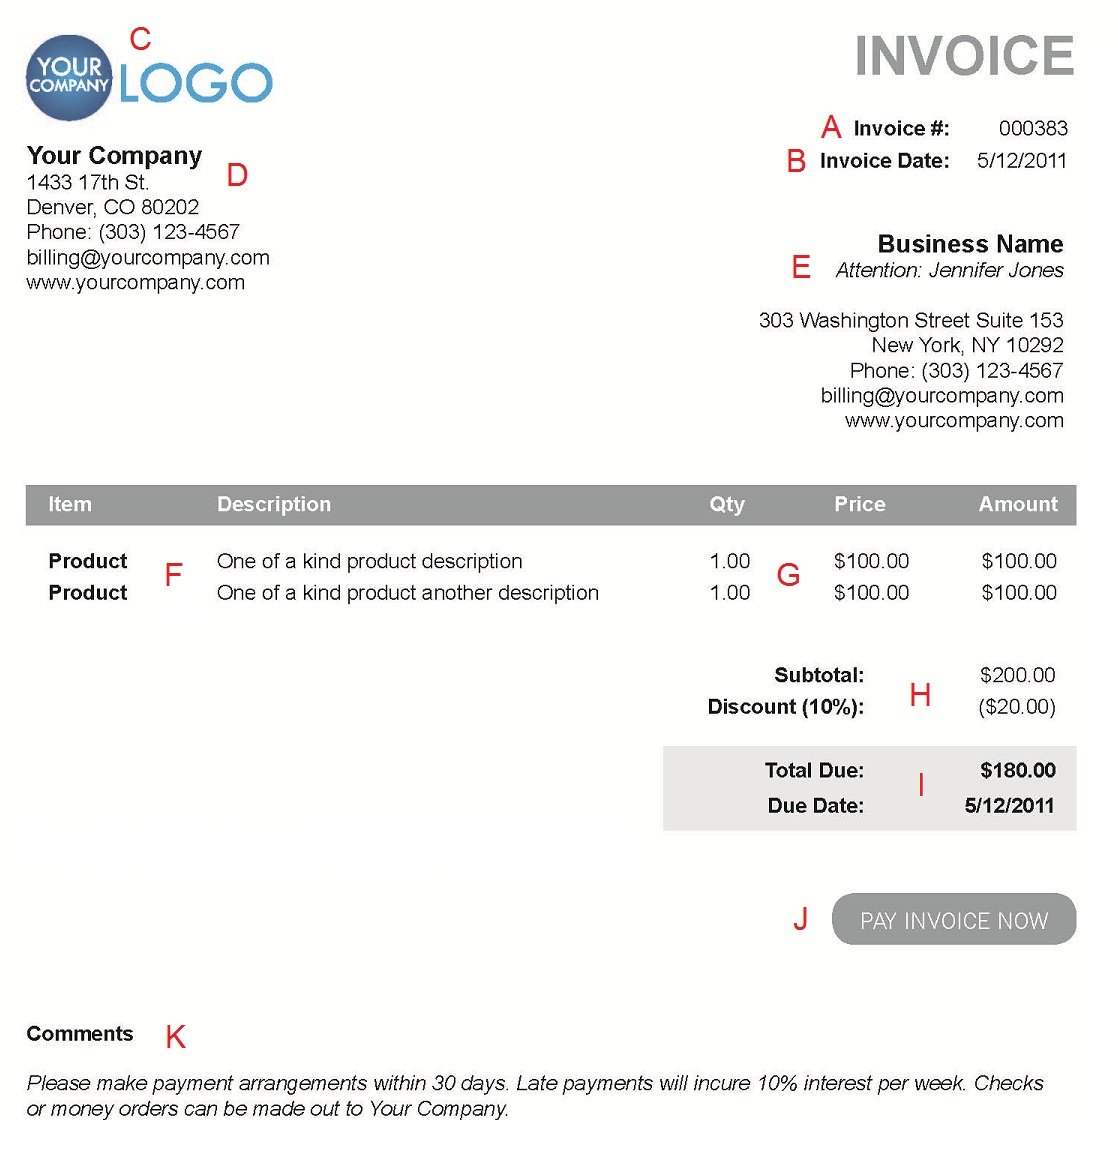 Theologygeekblogus  Picturesque The  Different Sections Of An Electronic Payment Invoice With Exquisite A  With Easy On The Eye Invoice Book Also Business Invoice In Addition Hvac Invoices And Invoice Price Car As Well As E Invoice Additionally Invoices Online From Paysimplecom With Theologygeekblogus  Exquisite The  Different Sections Of An Electronic Payment Invoice With Easy On The Eye A  And Picturesque Invoice Book Also Business Invoice In Addition Hvac Invoices From Paysimplecom